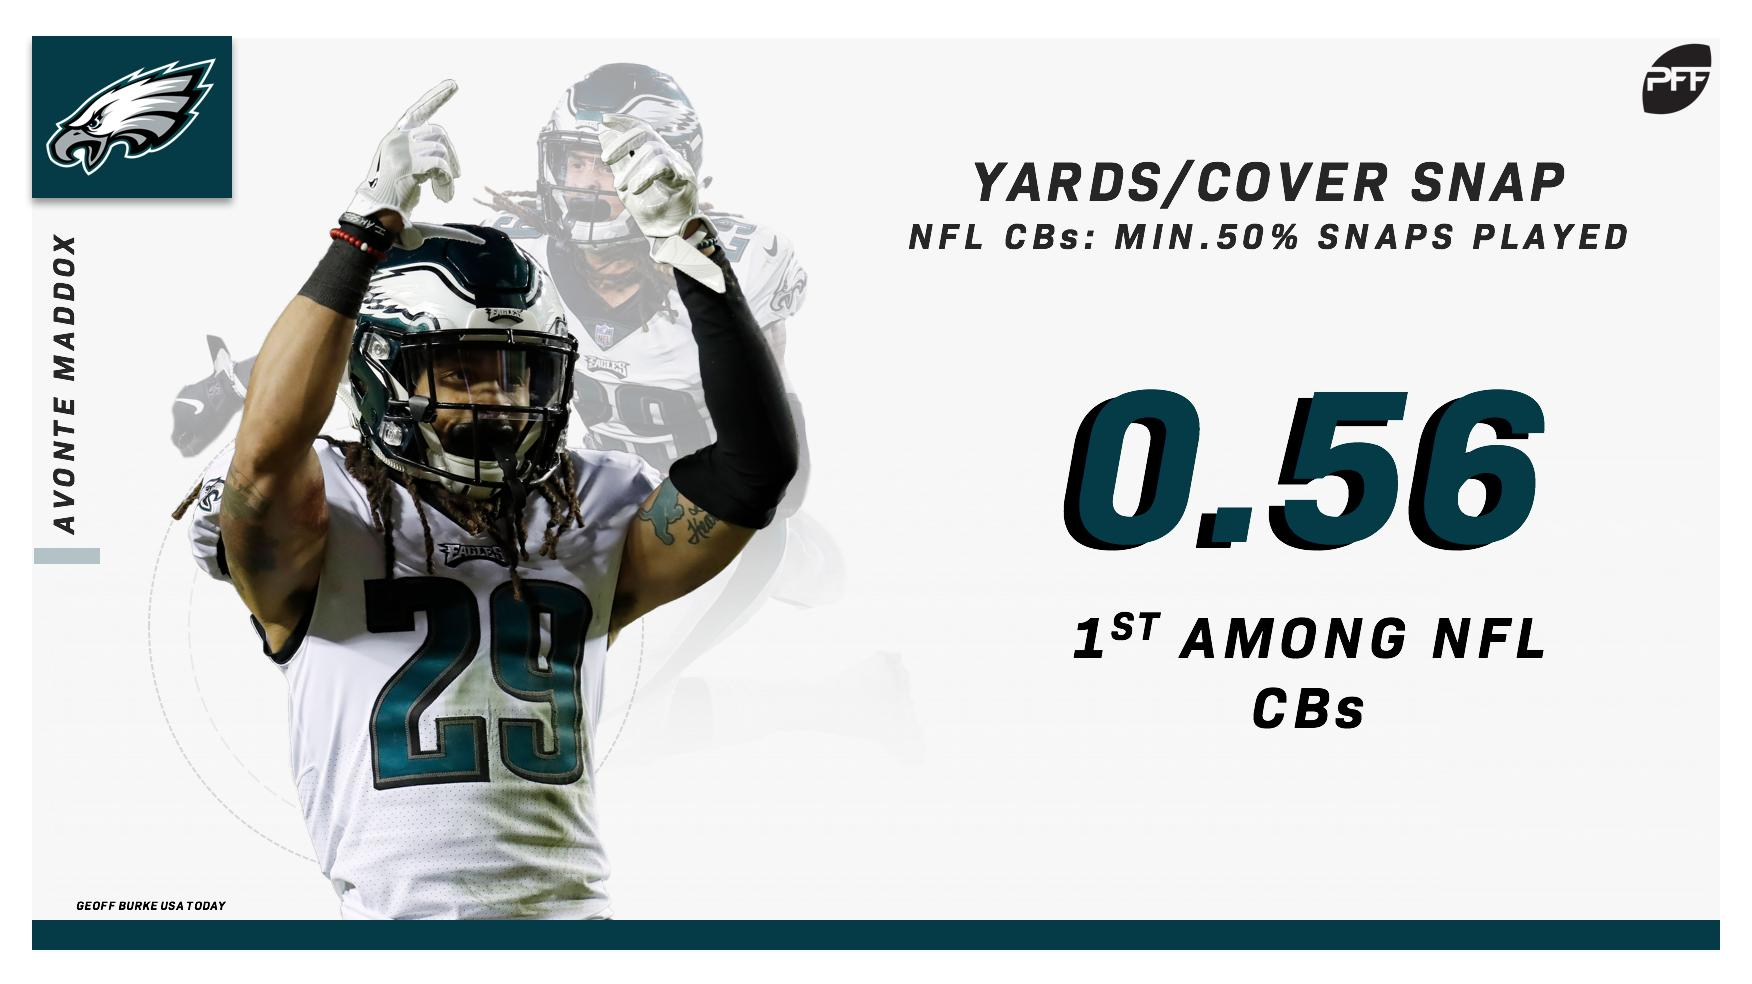 NFL CB coverage stats